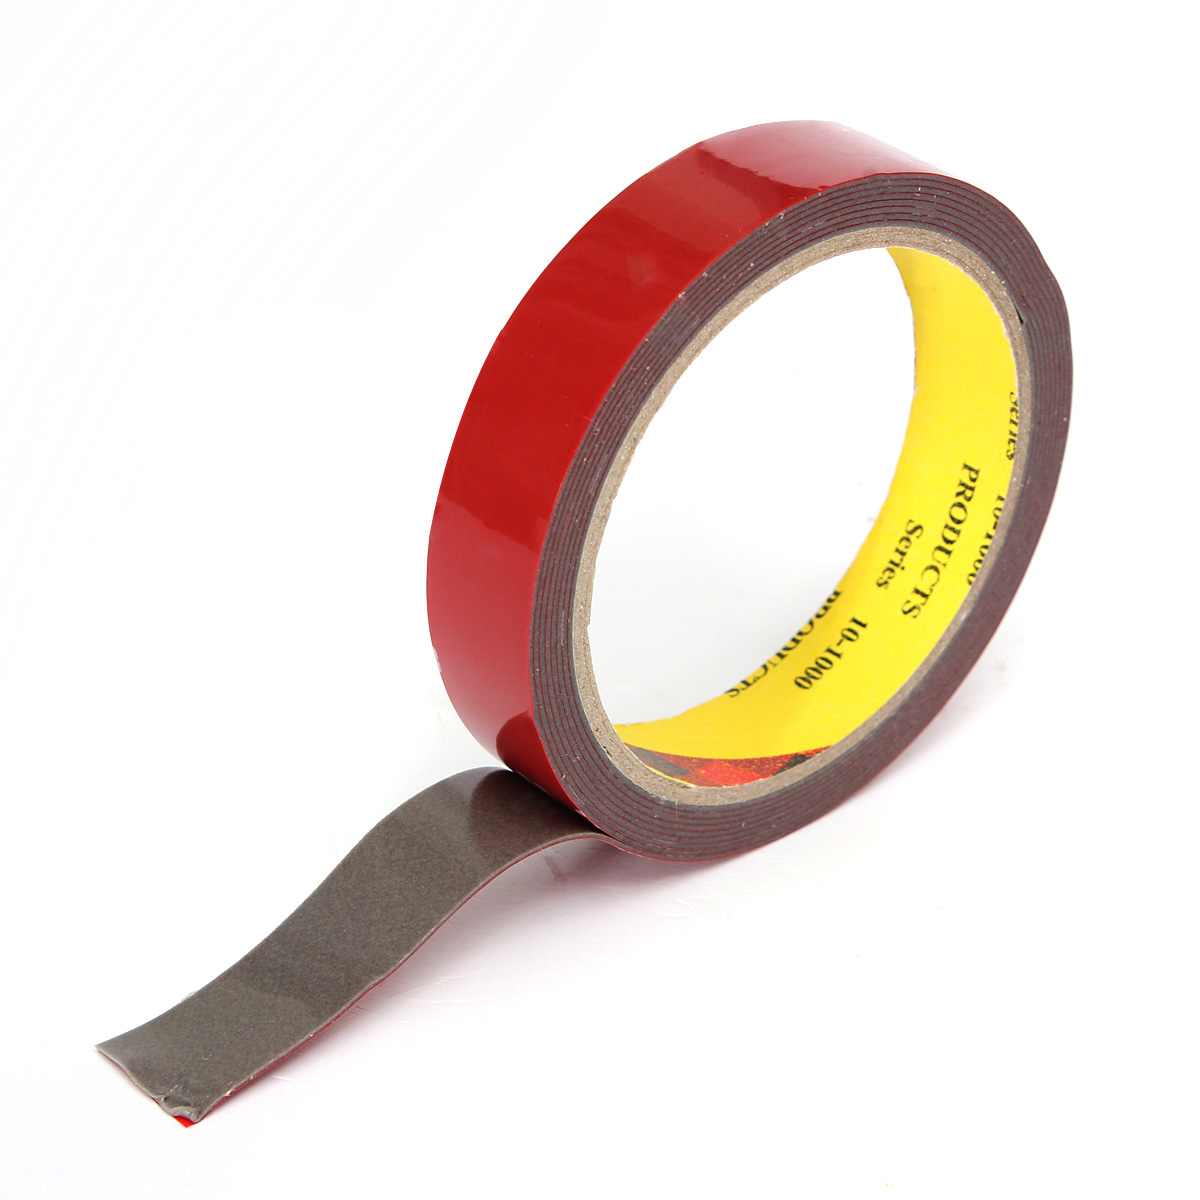 3M Double Sided Adhesive Tape Super Sticky Acrylic Foam Sticker for Car Auto Interior Fixed